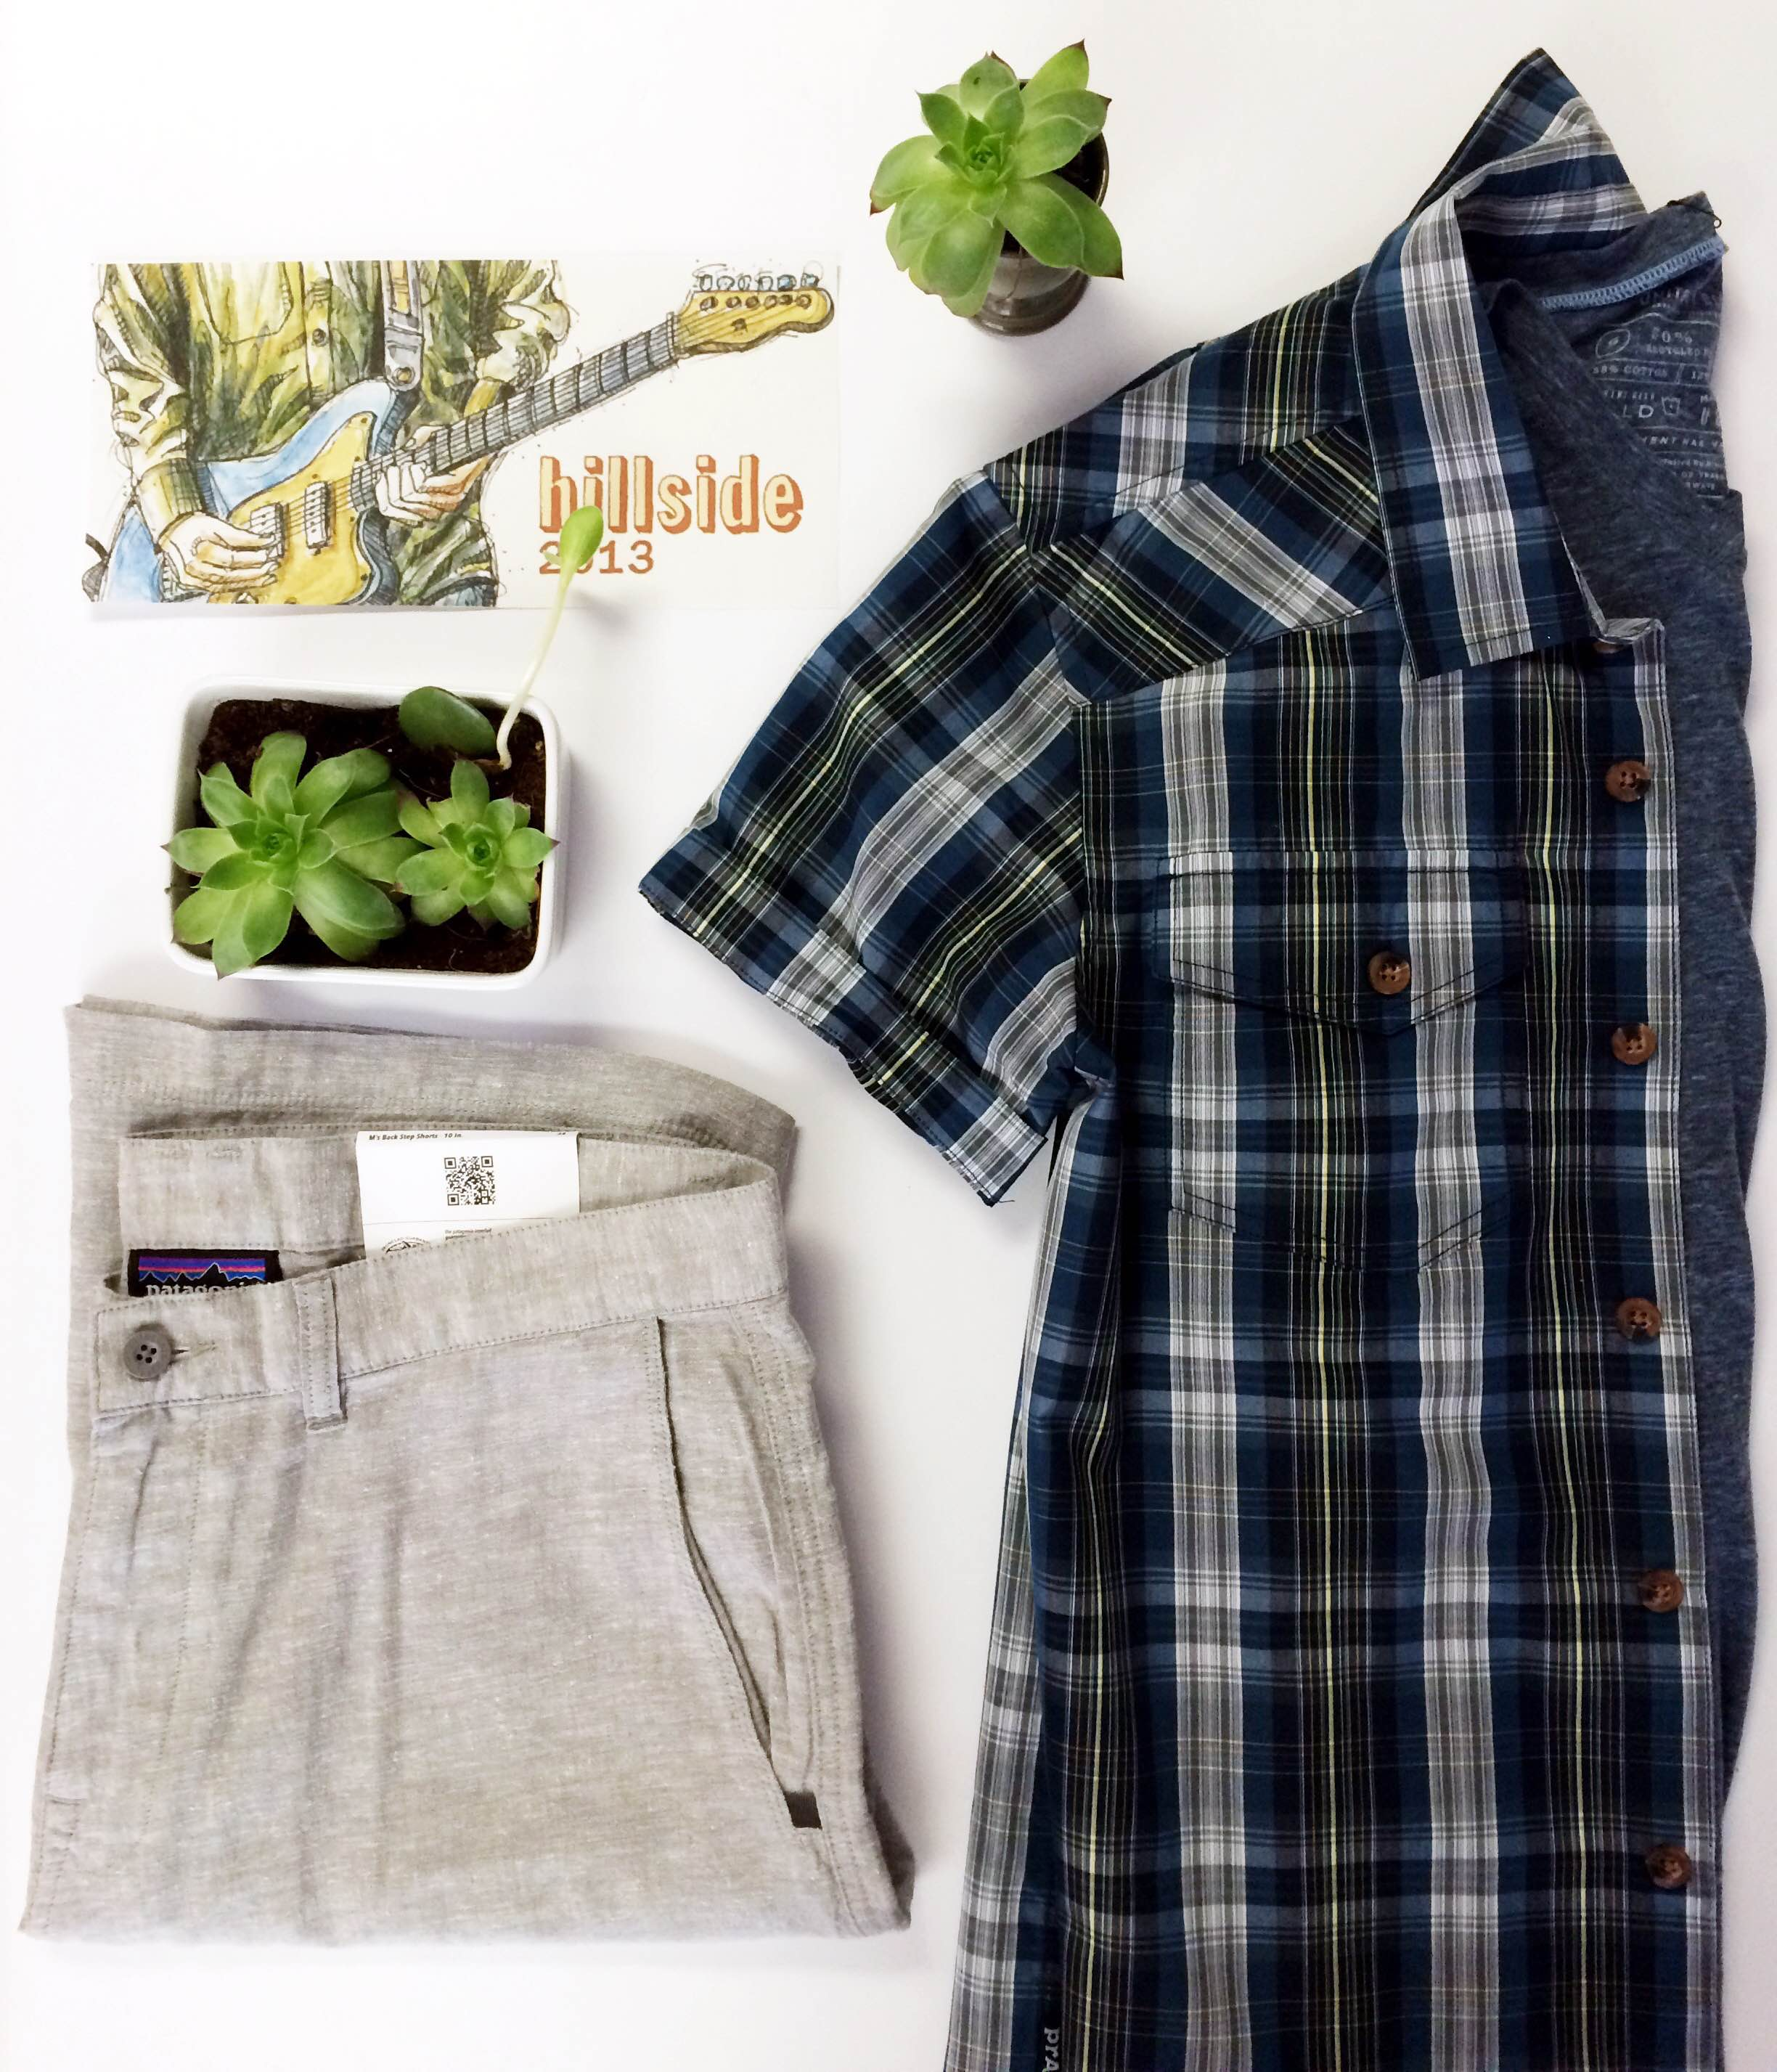 For our 2013 post, we're keeping it neutral with our Prana plaid button down and a light blue United By Blue standard v-neck tee for some coverage. Keep it breezy and cool with Patagonia's hemp and cotton shorts.